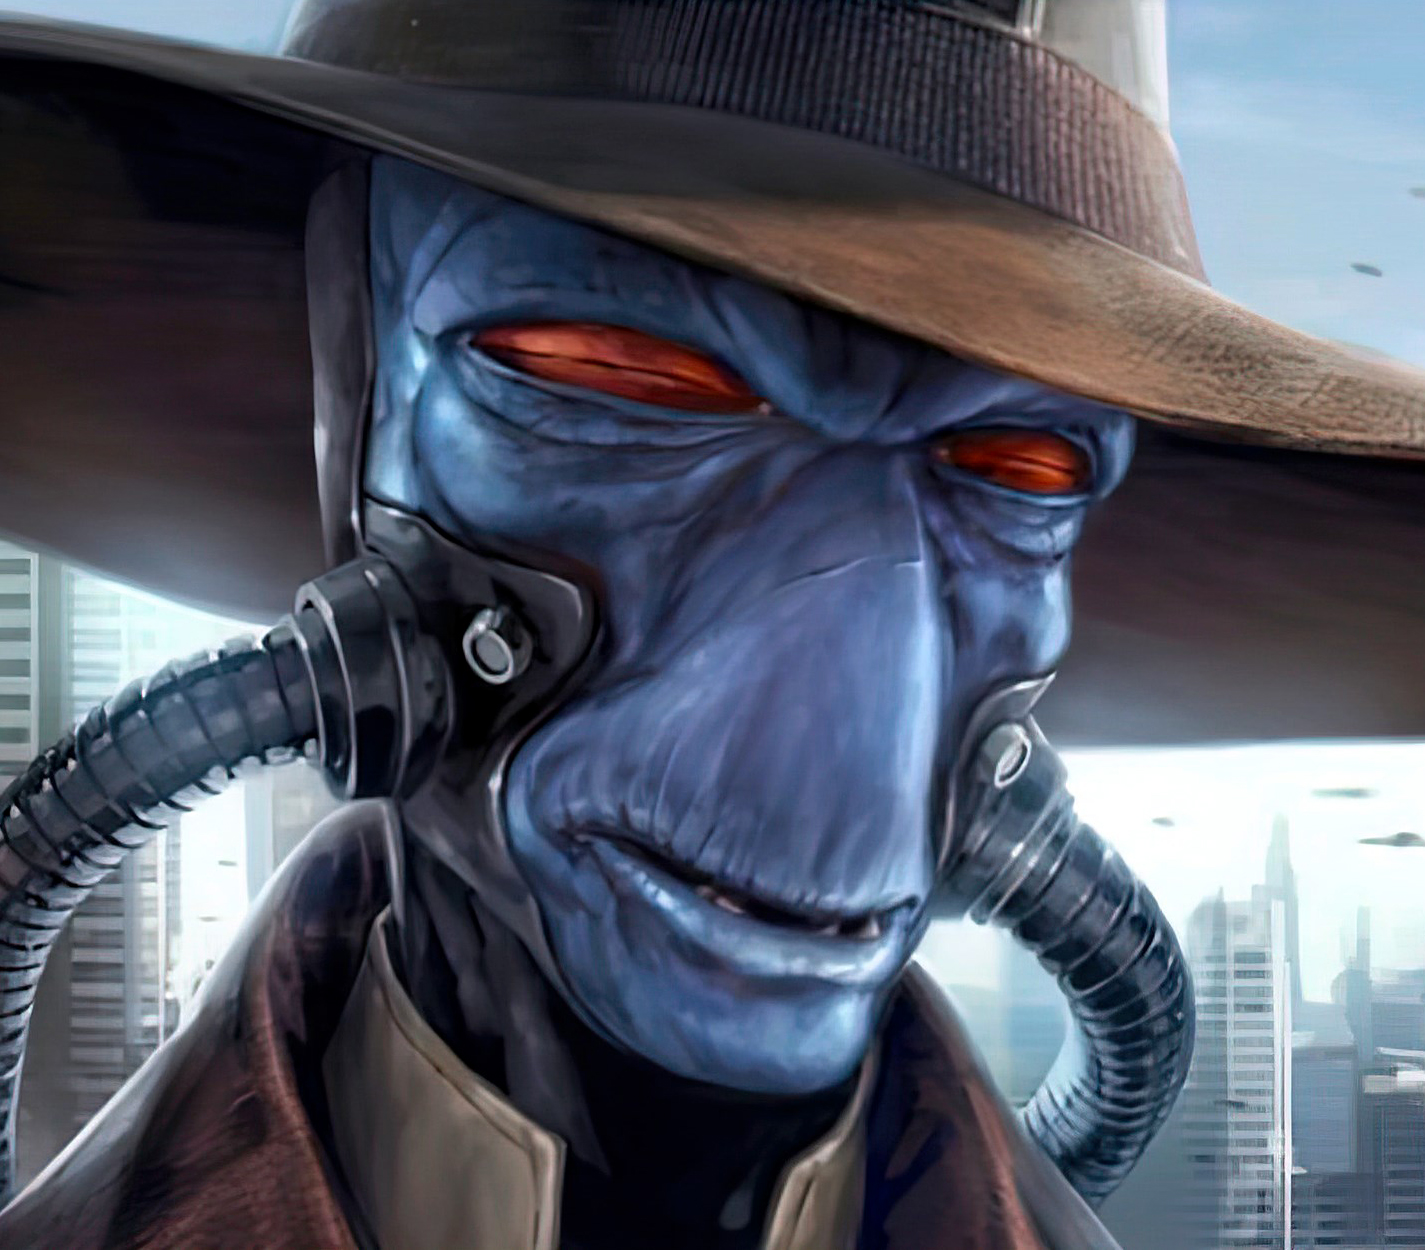 Cad Bane/Legends